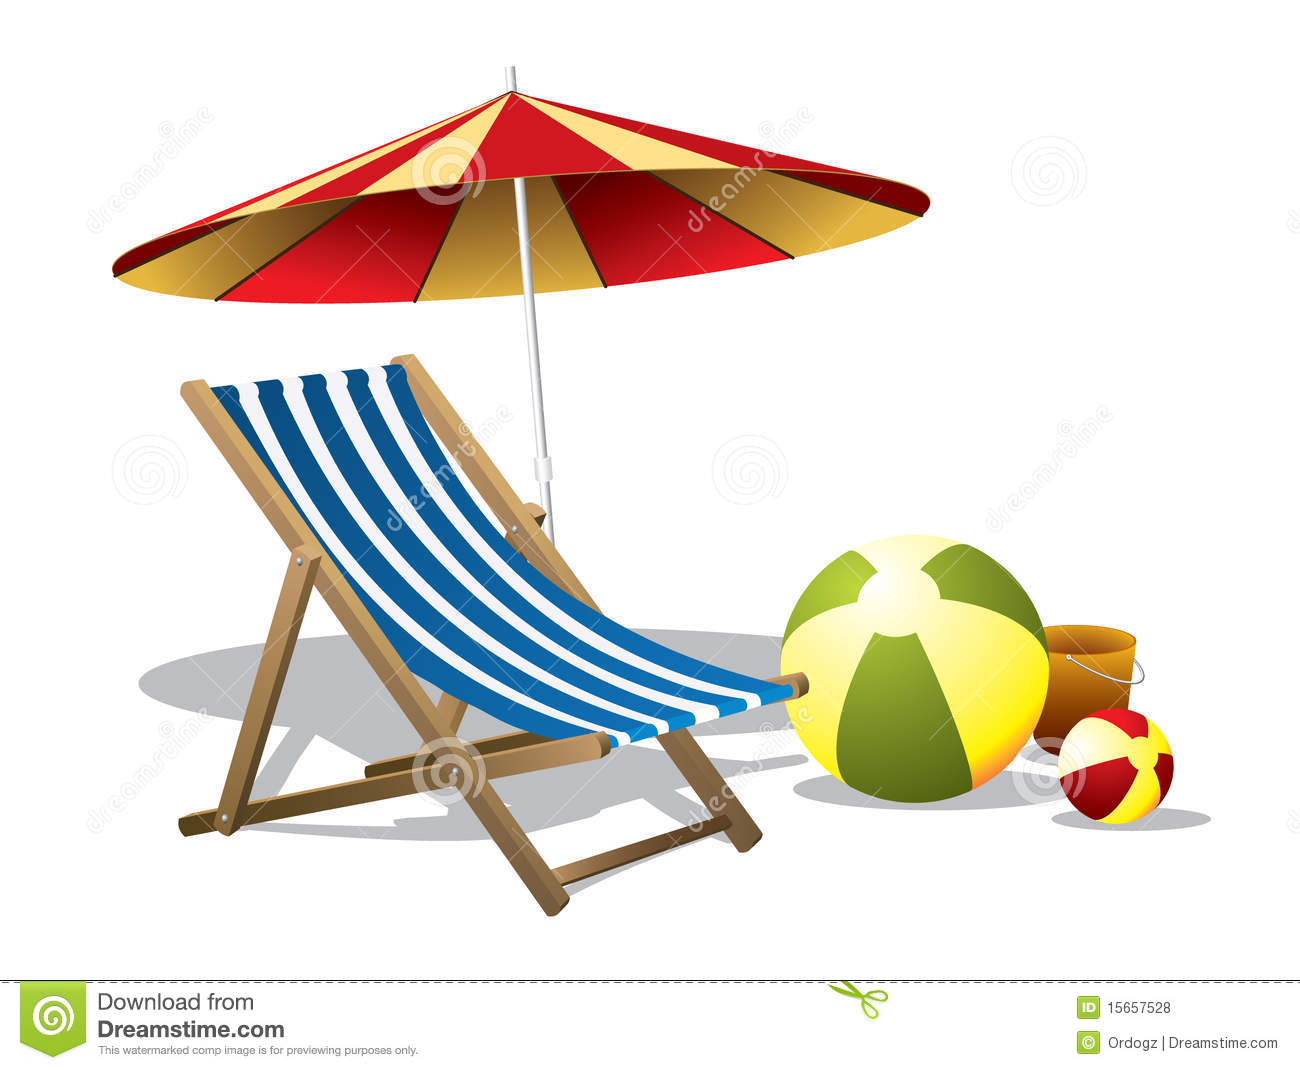 chair with umbrella attached eames lounge uk replica clipart beach and clipground